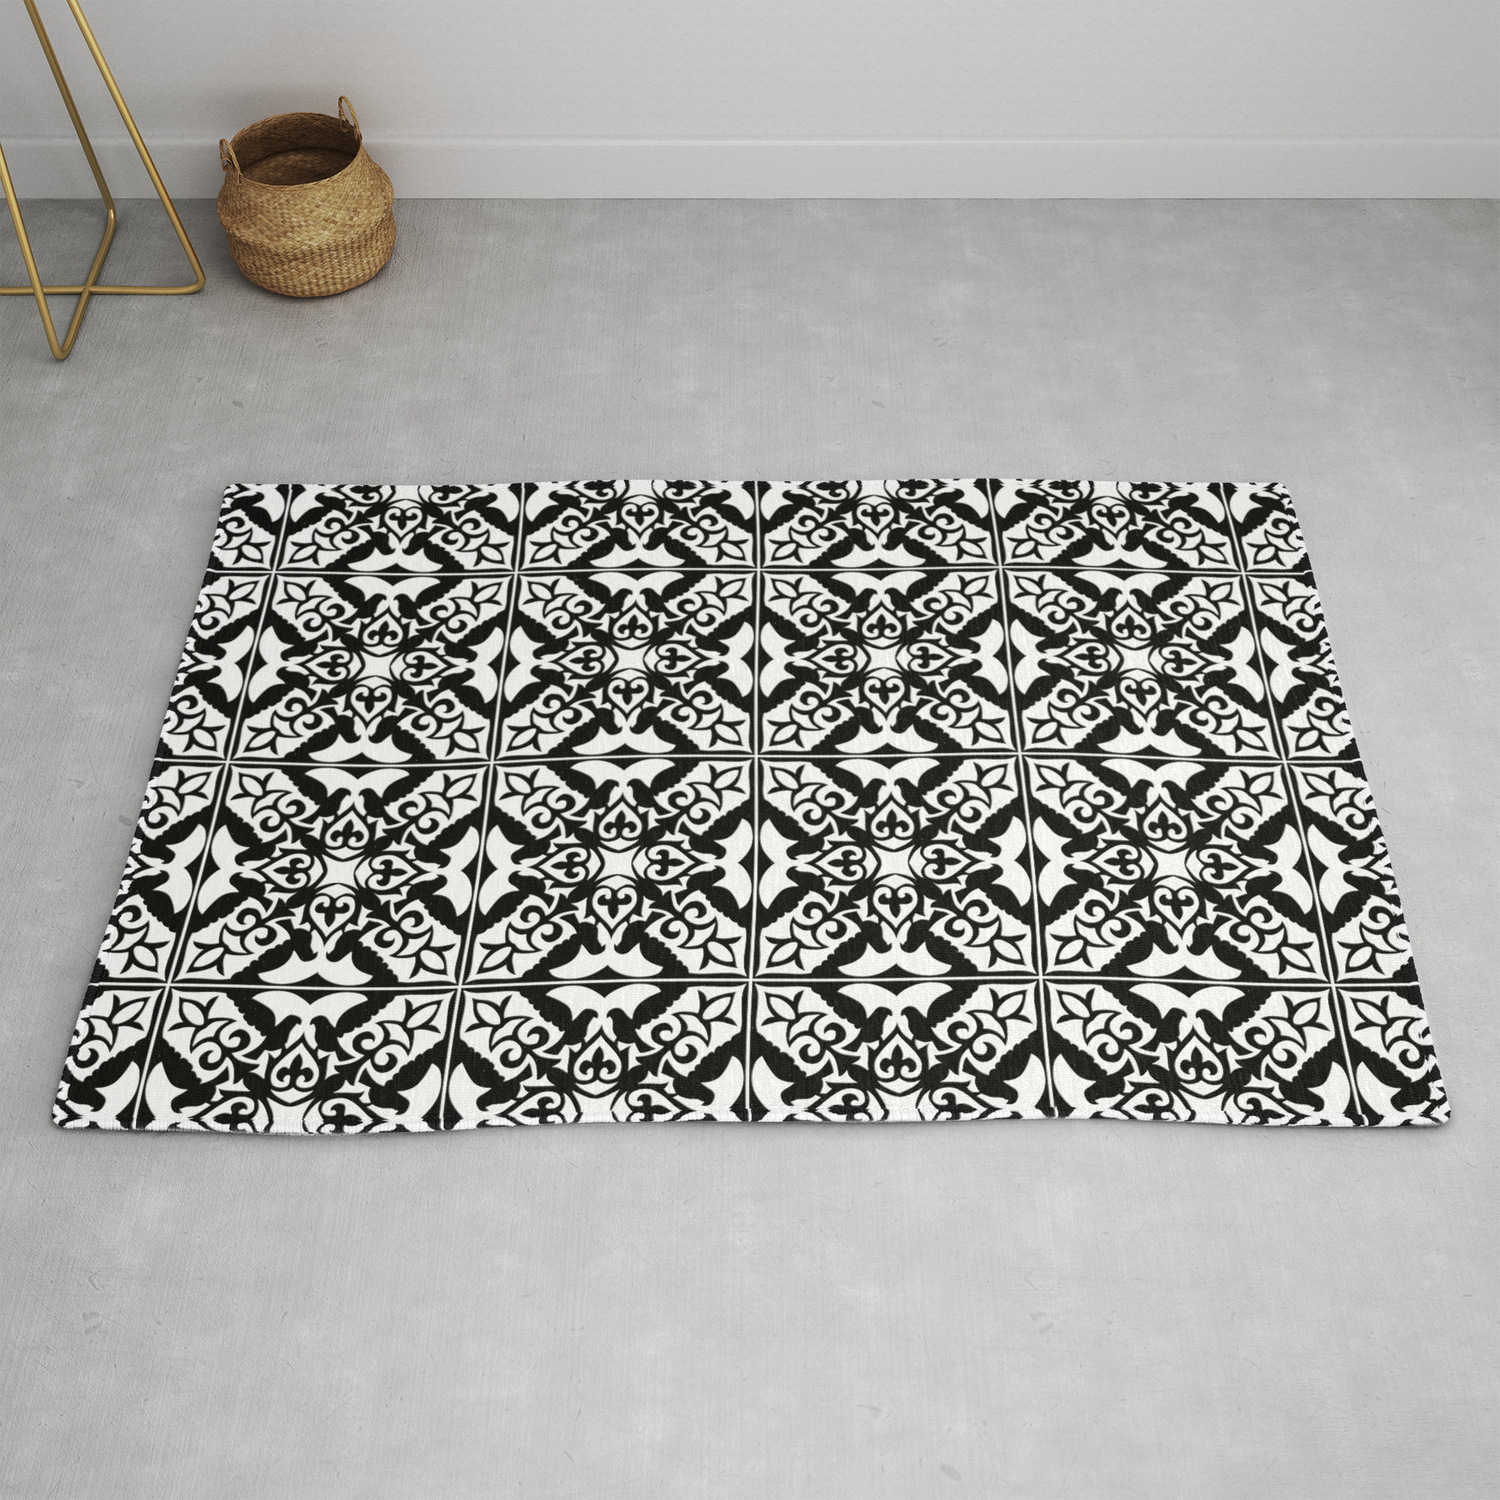 Moroccan Tile Pattern In Black And